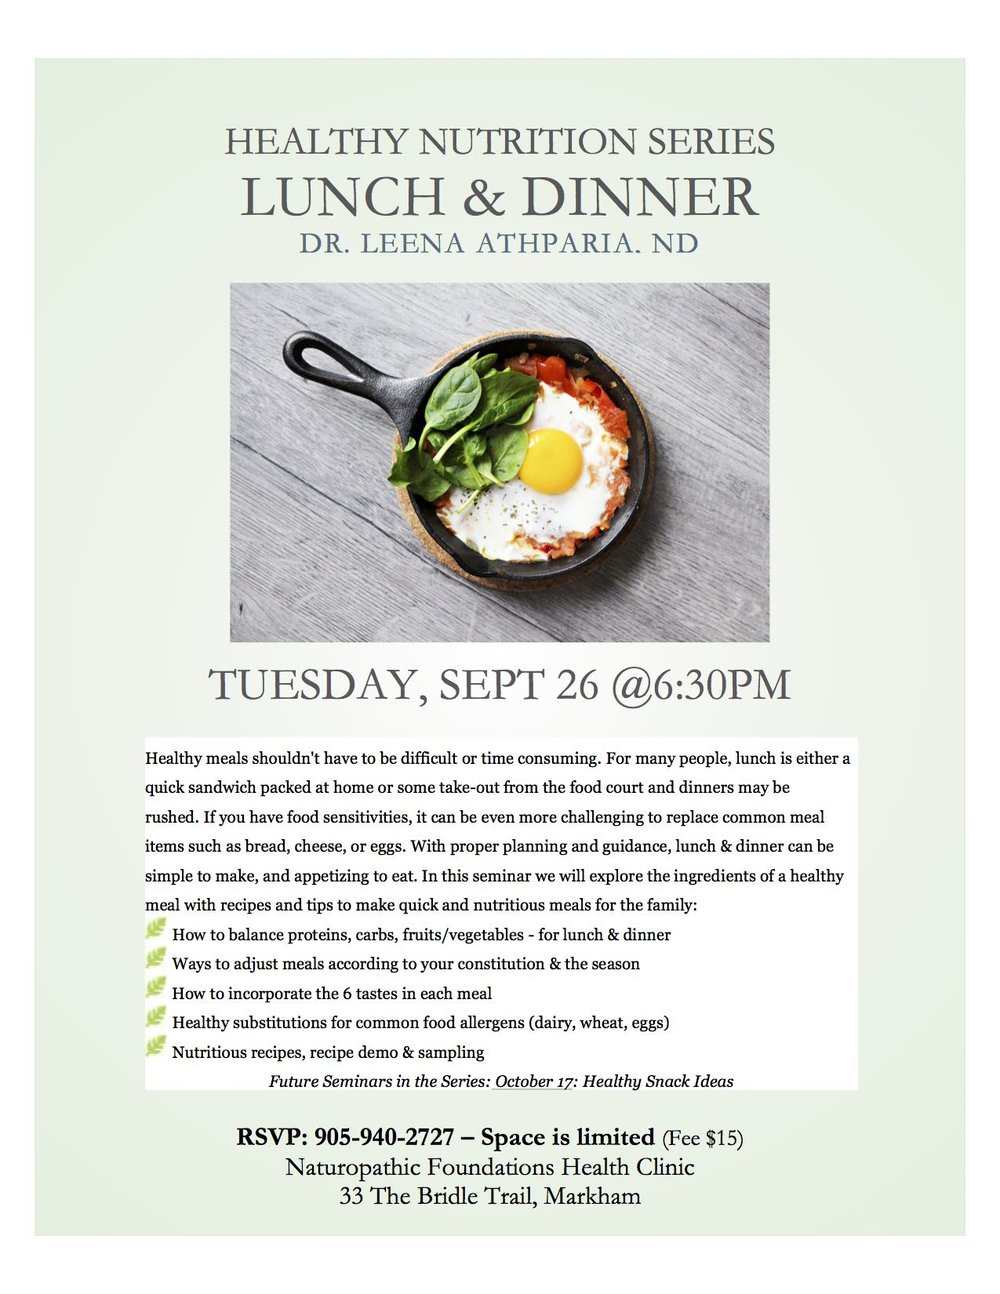 Workshop - Healthy Nutrition Series Lunch & Dinner.jpg